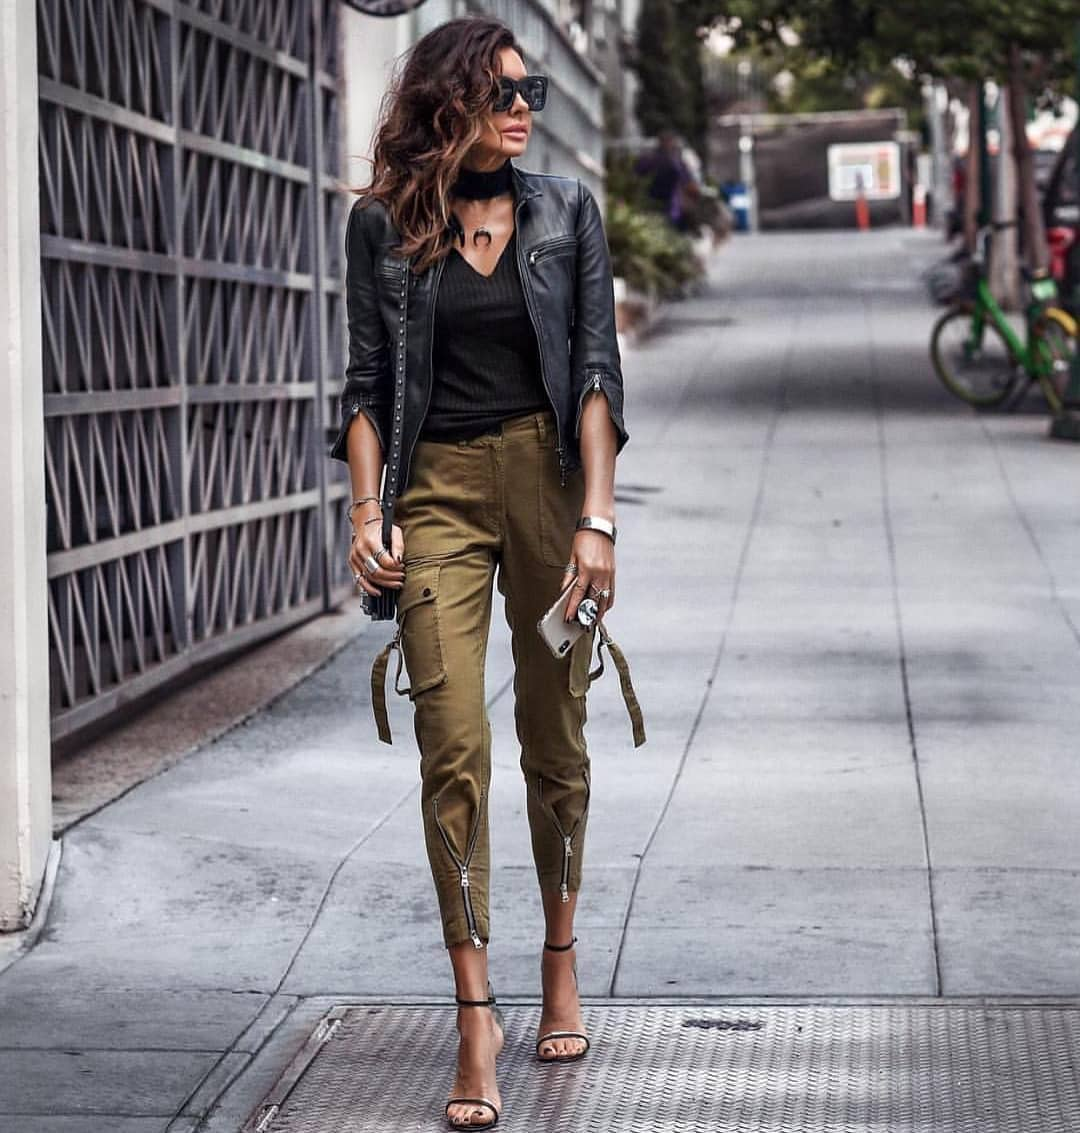 Casual Street Style Look: Black Leather Jacket And Khaki Green Cargo Pants 2019